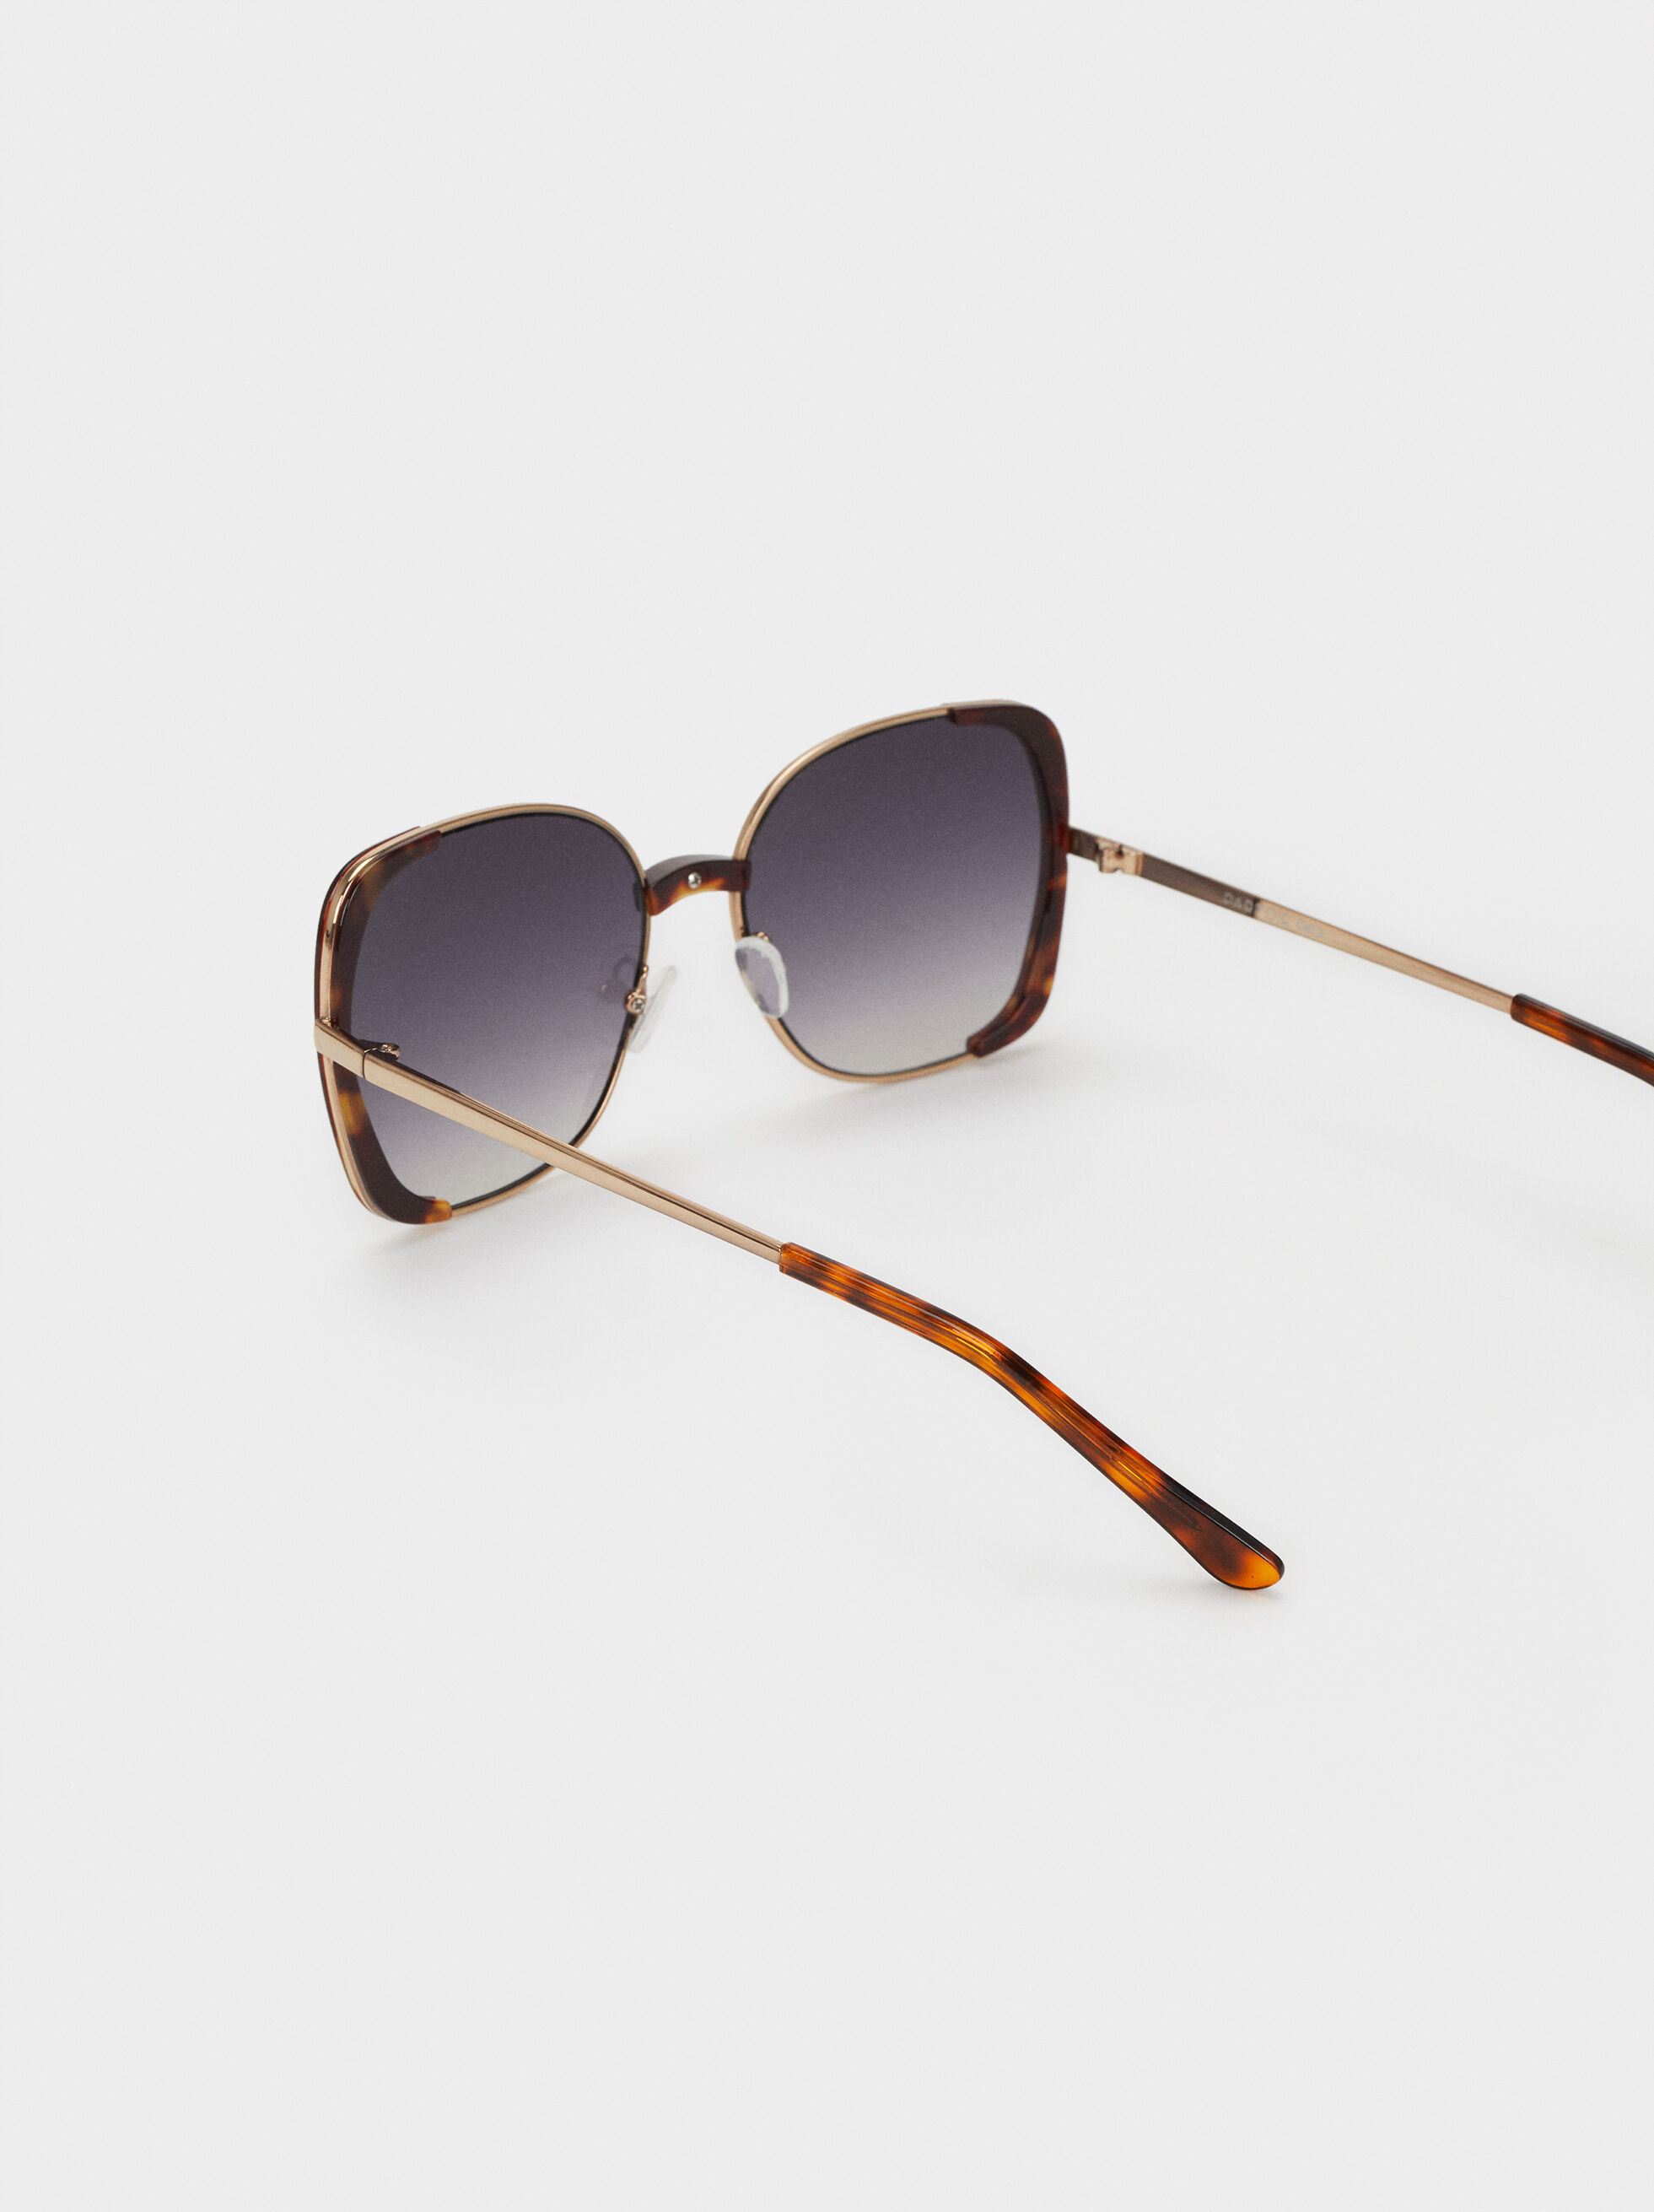 Square Tortoiseshell Sunglasses, Brown, hi-res